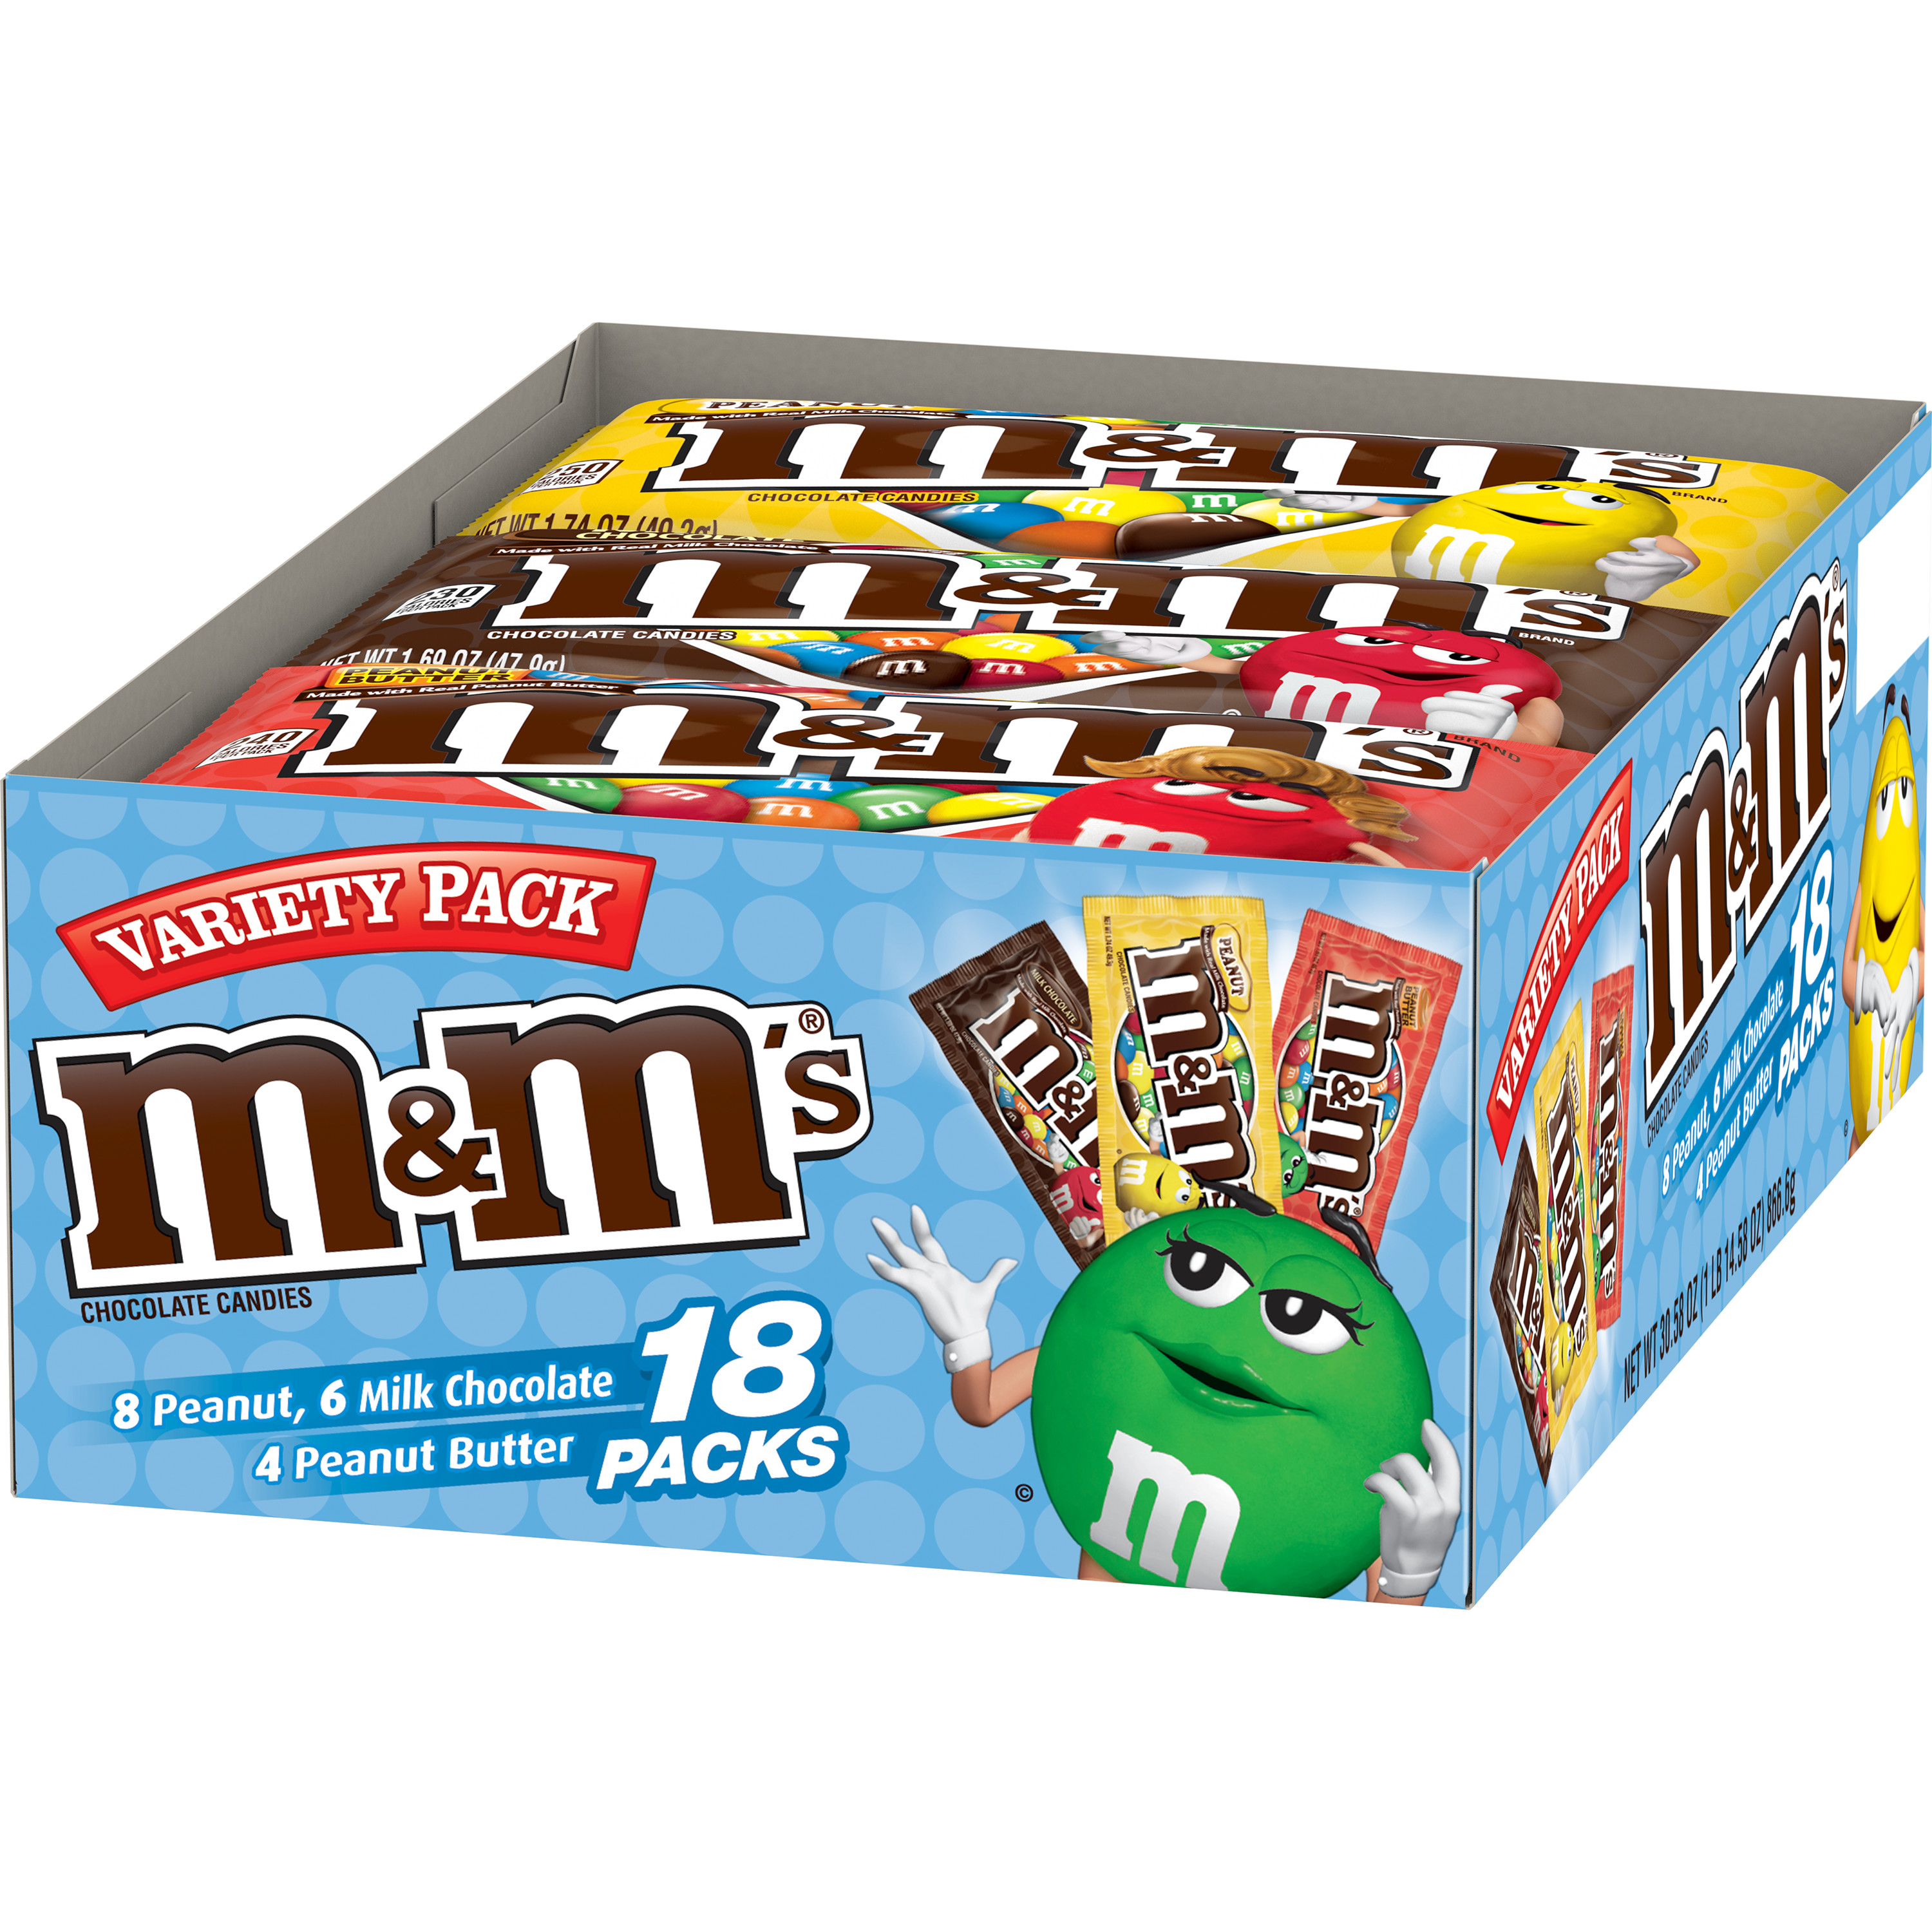 M&M'S Variety Pack Milk Chocolate Candy | Contains 18 Single Size Packs, 30.58 Oz. | Peanut, Peanut Butter, Milk Chocolate